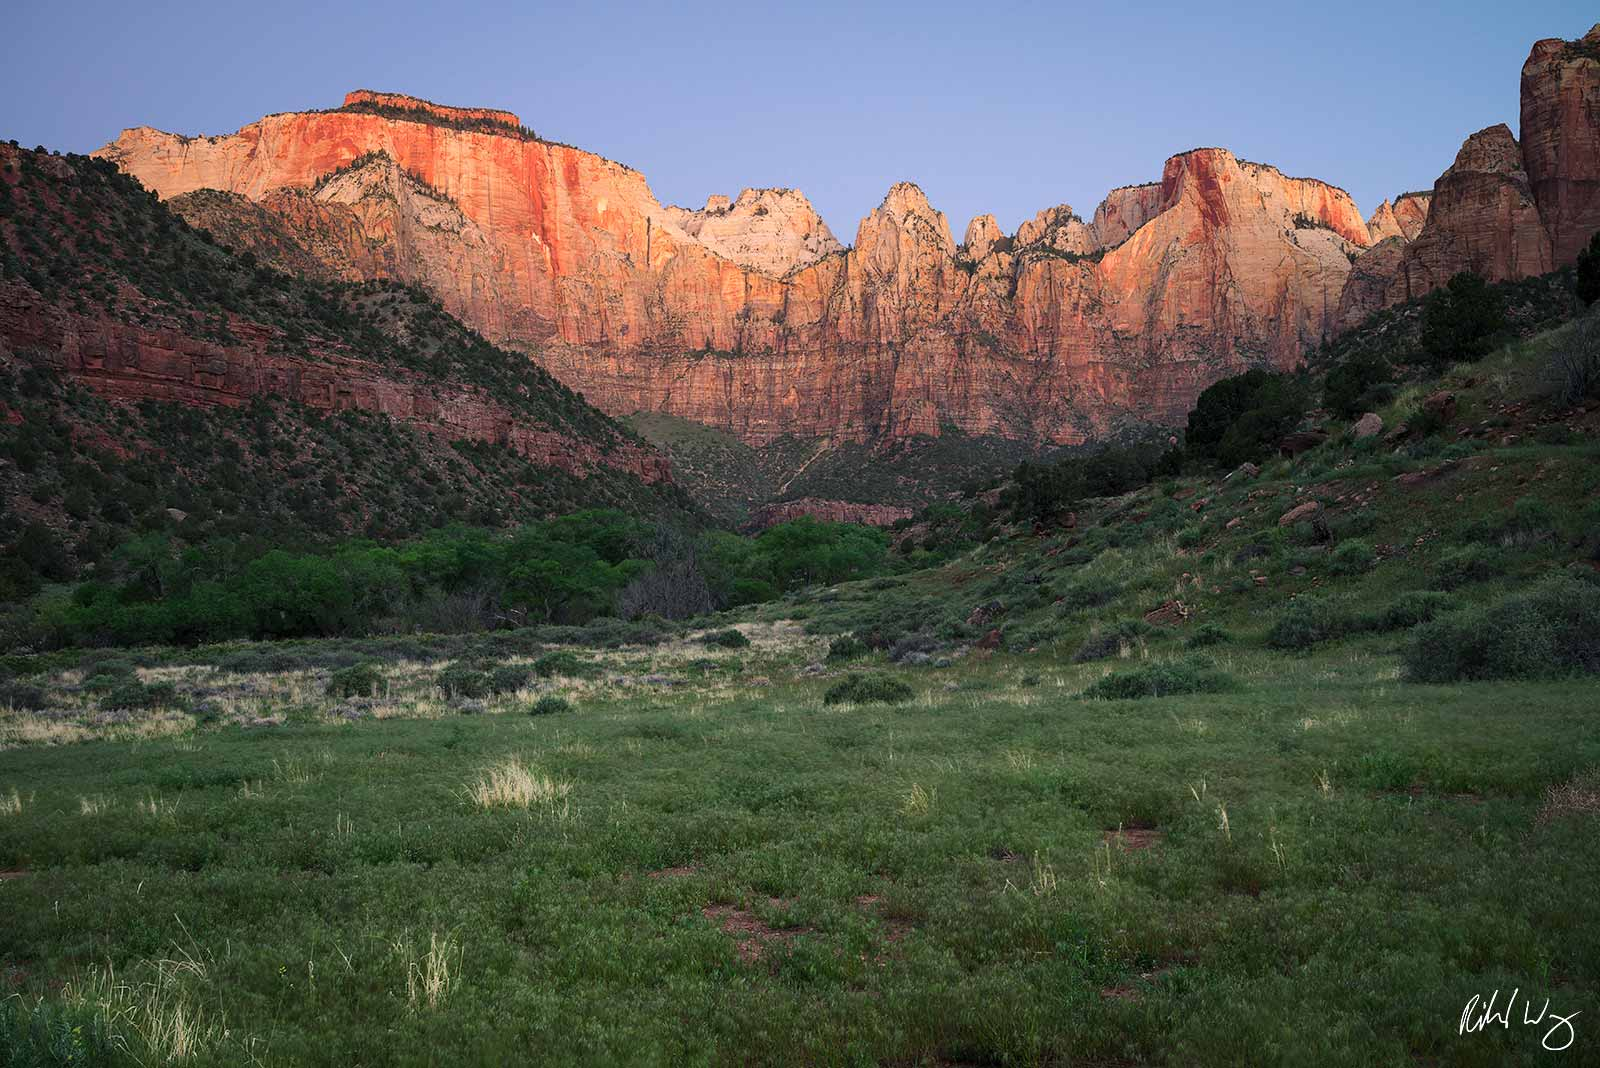 Towers of the Virgin at Sunrise, Zion Natoinal Park, Utah